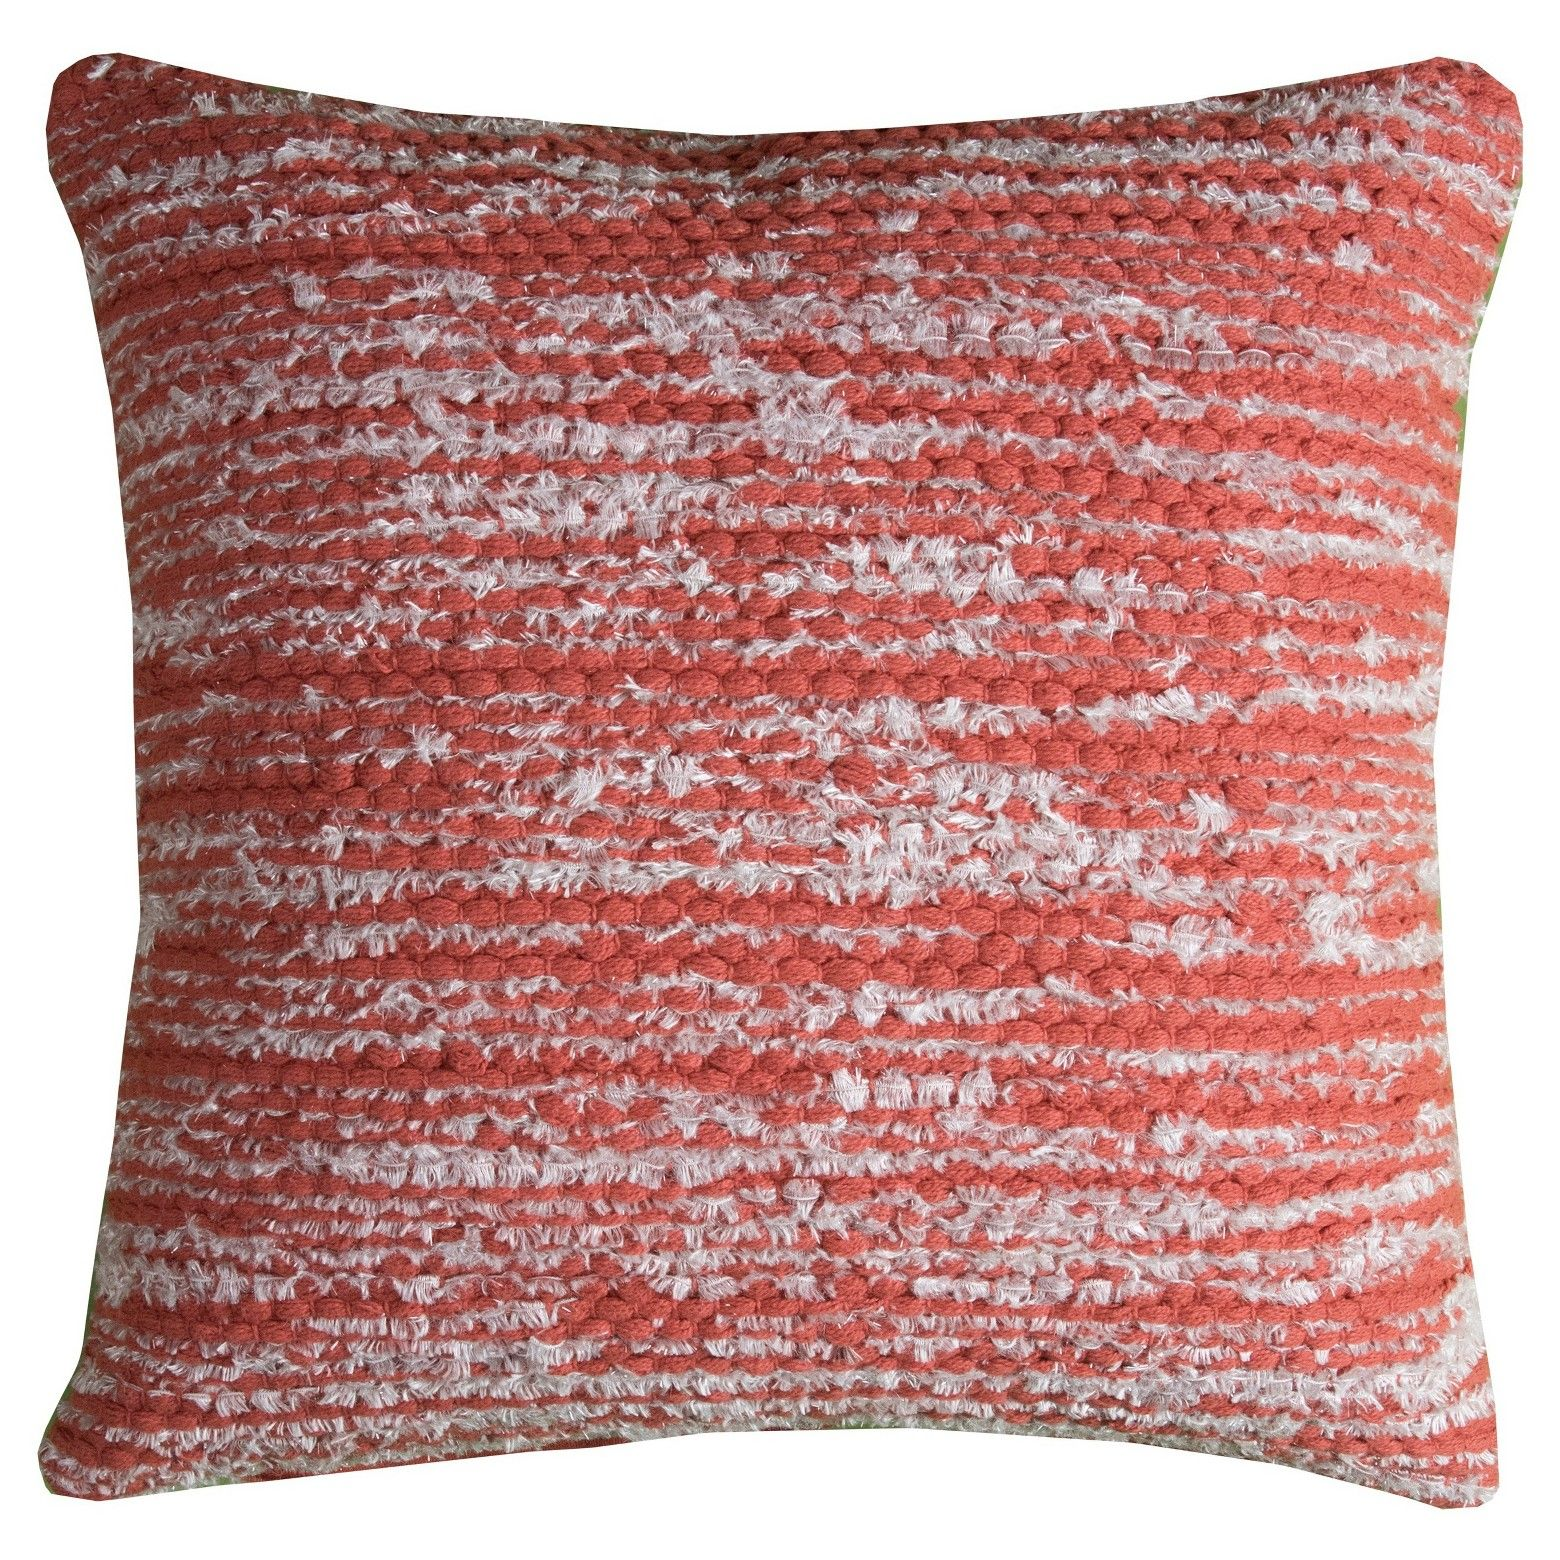 Rust stripes throw pillow x rizzy home rusted red rust